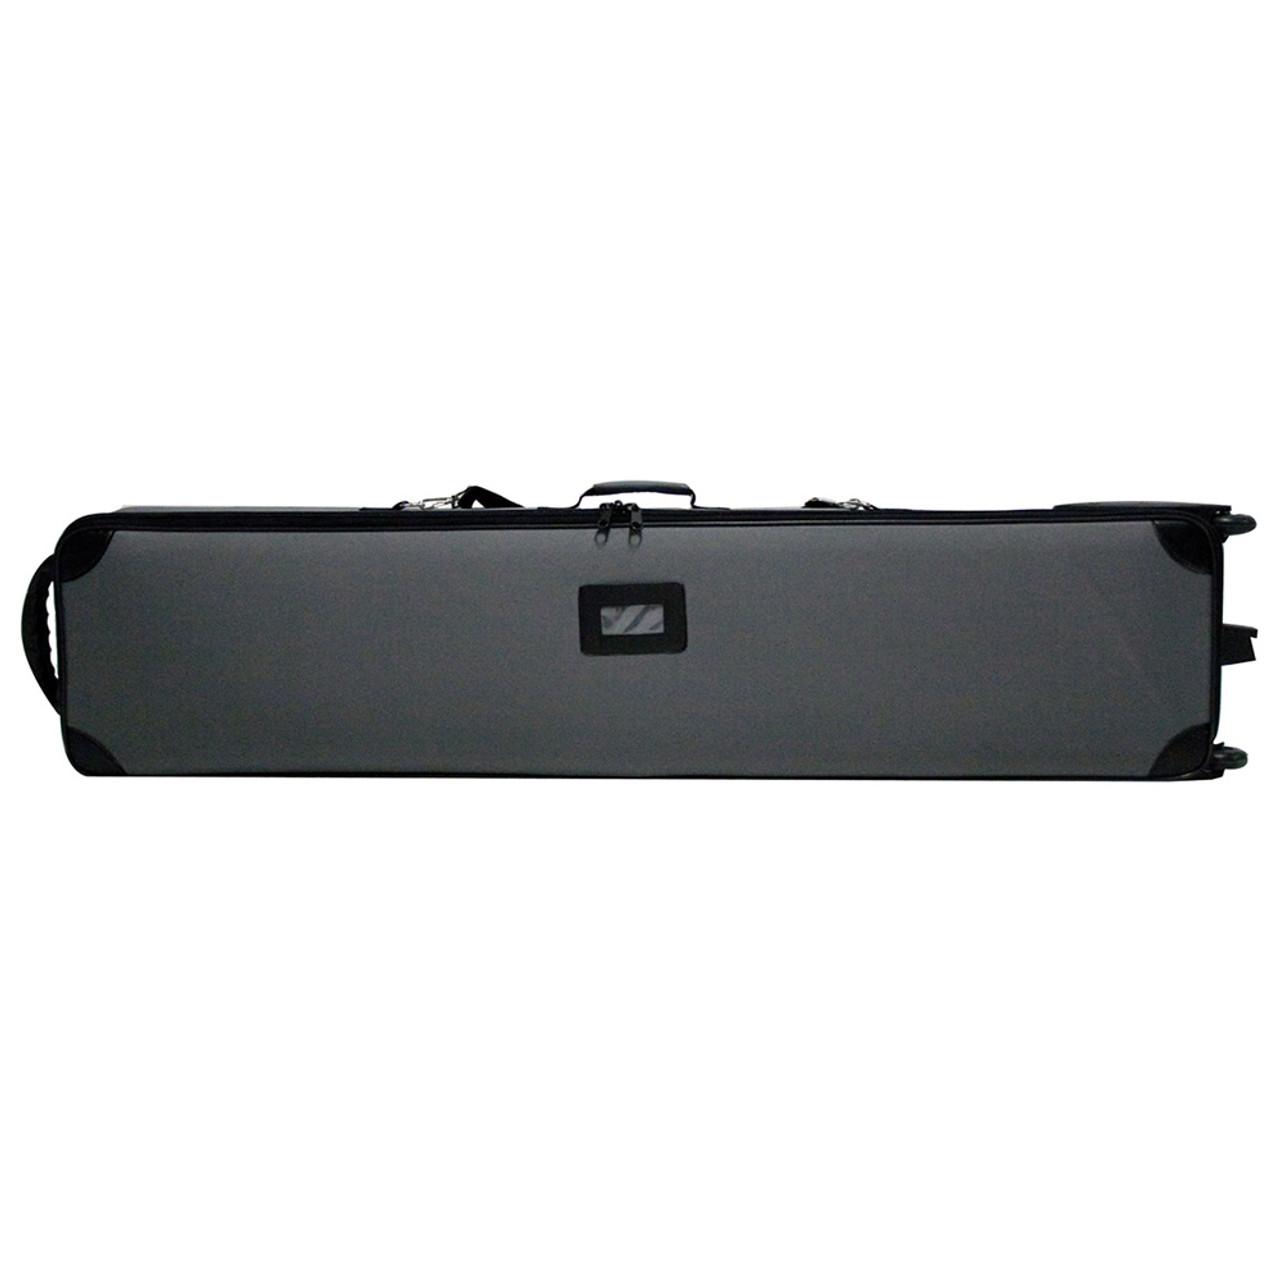 Comes standard with display unless you upgrade to medium hard case